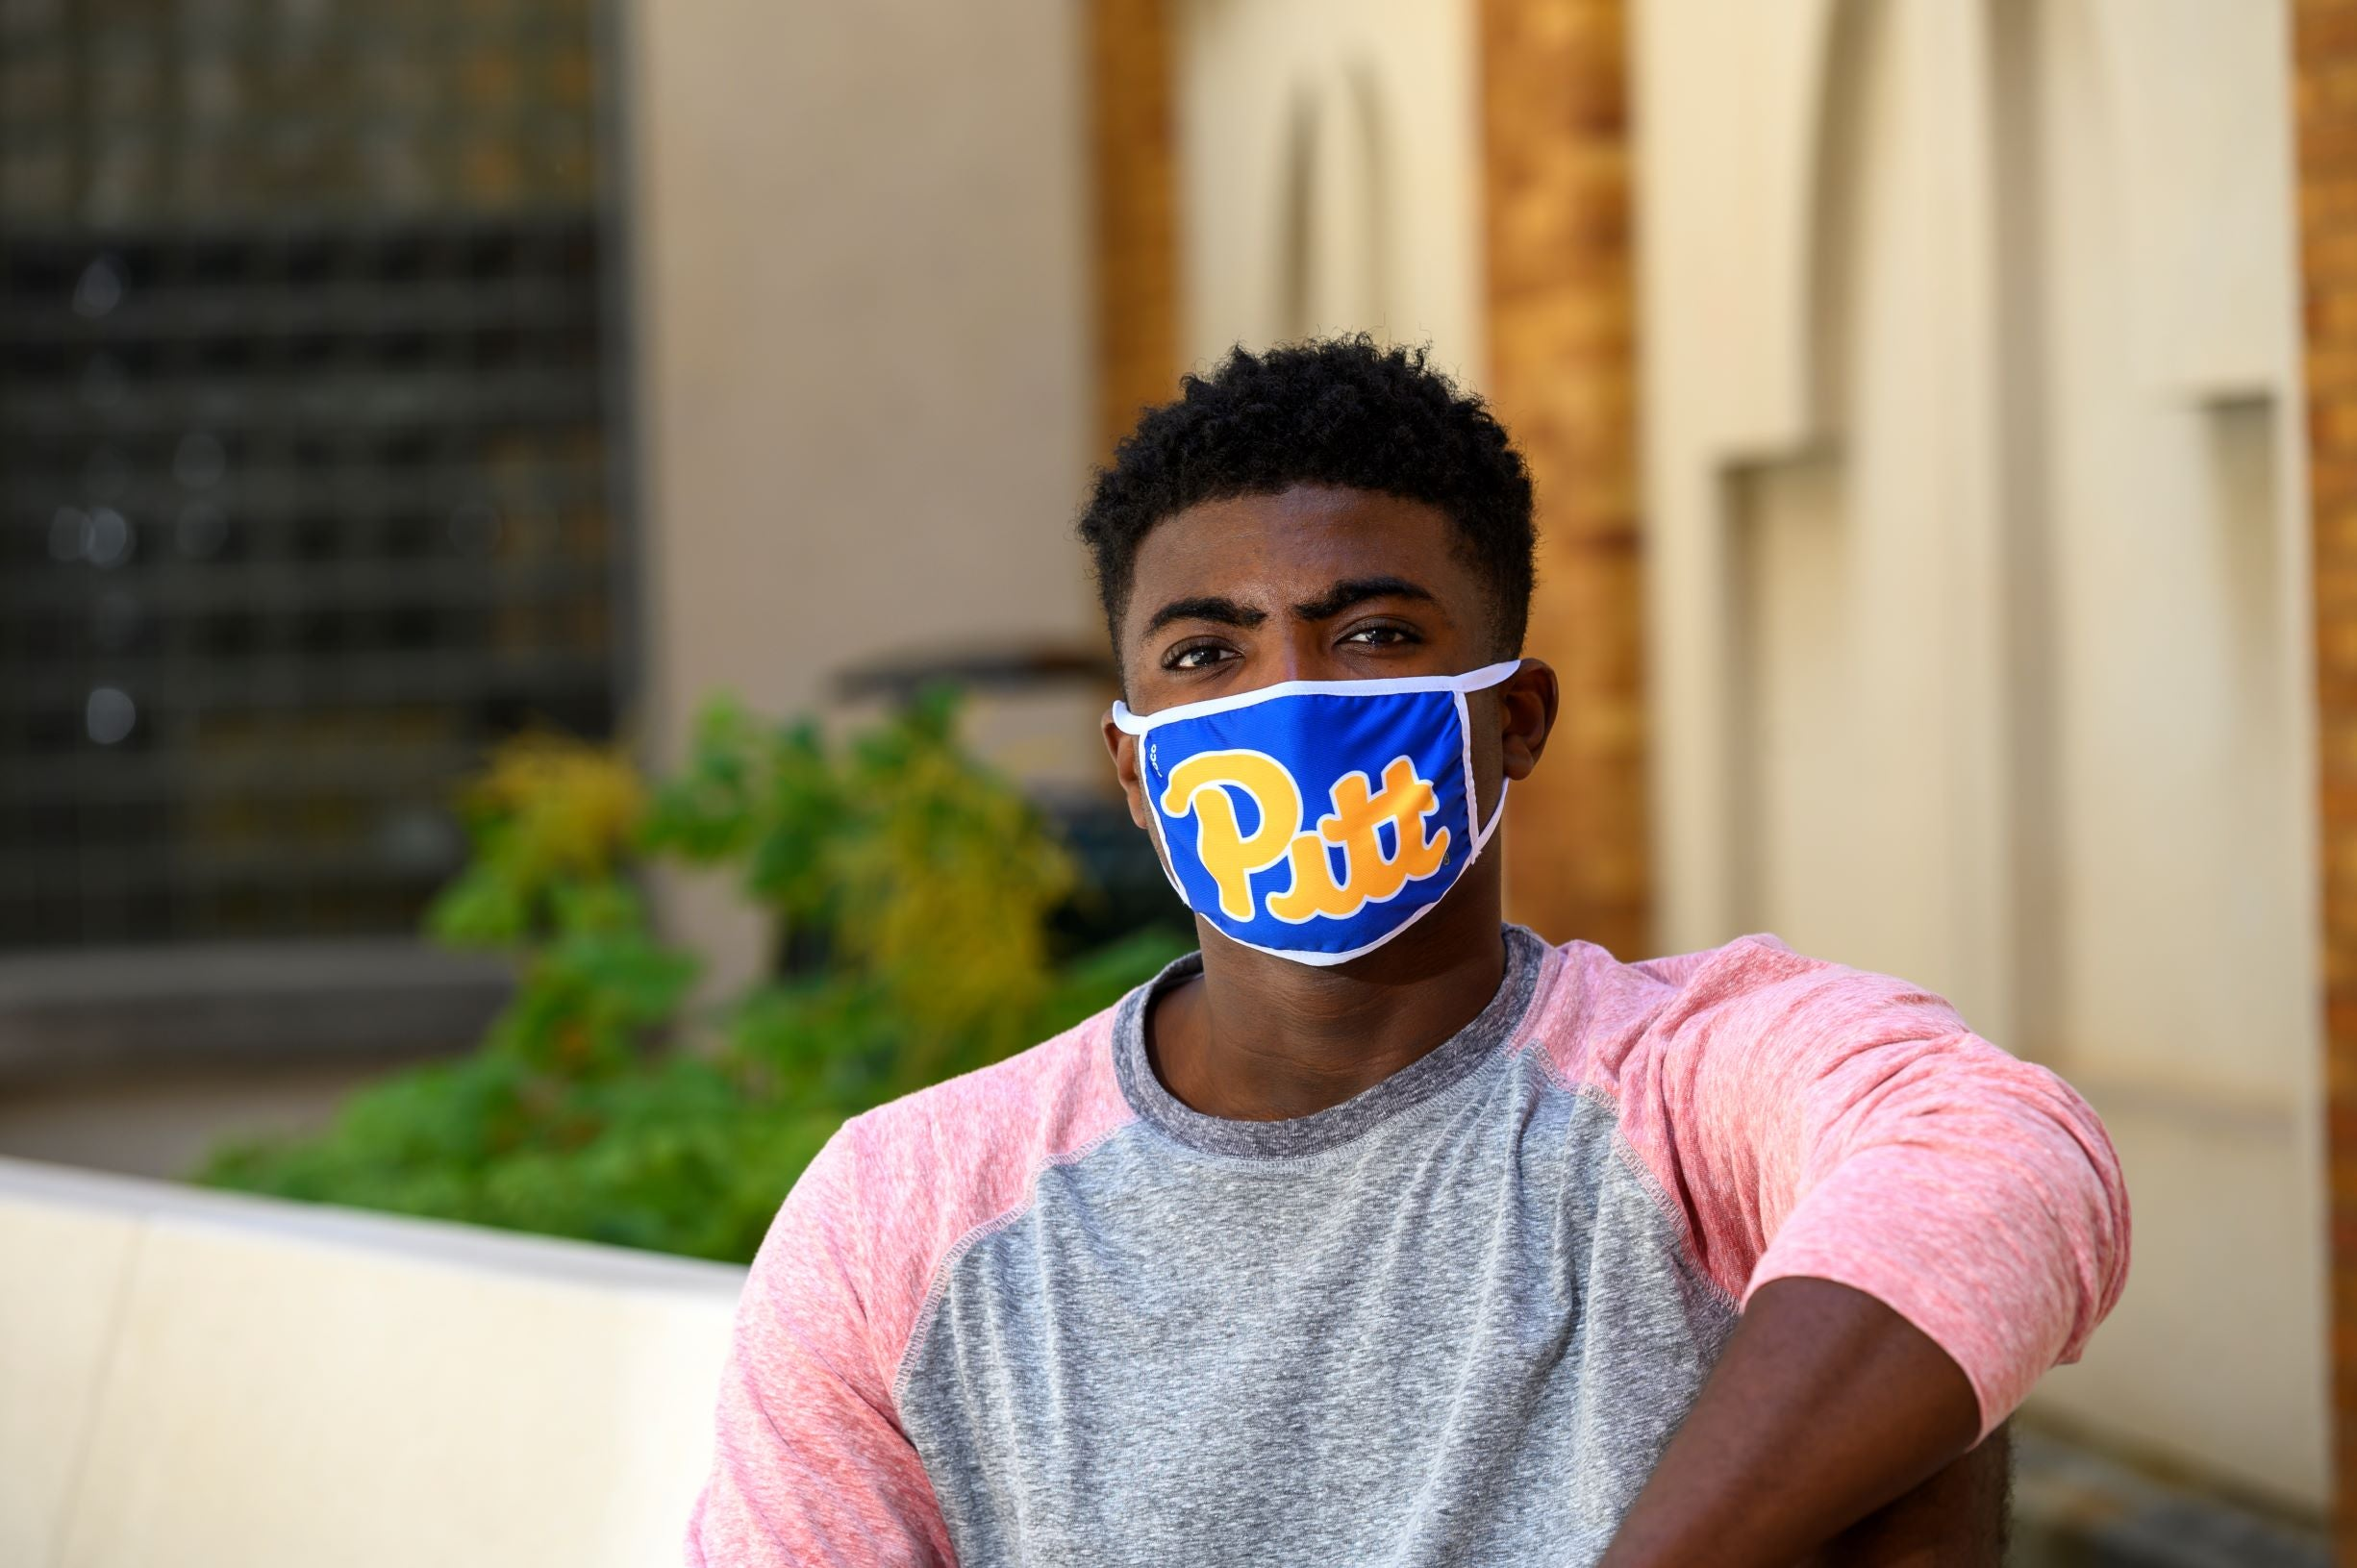 Pitt student with mask